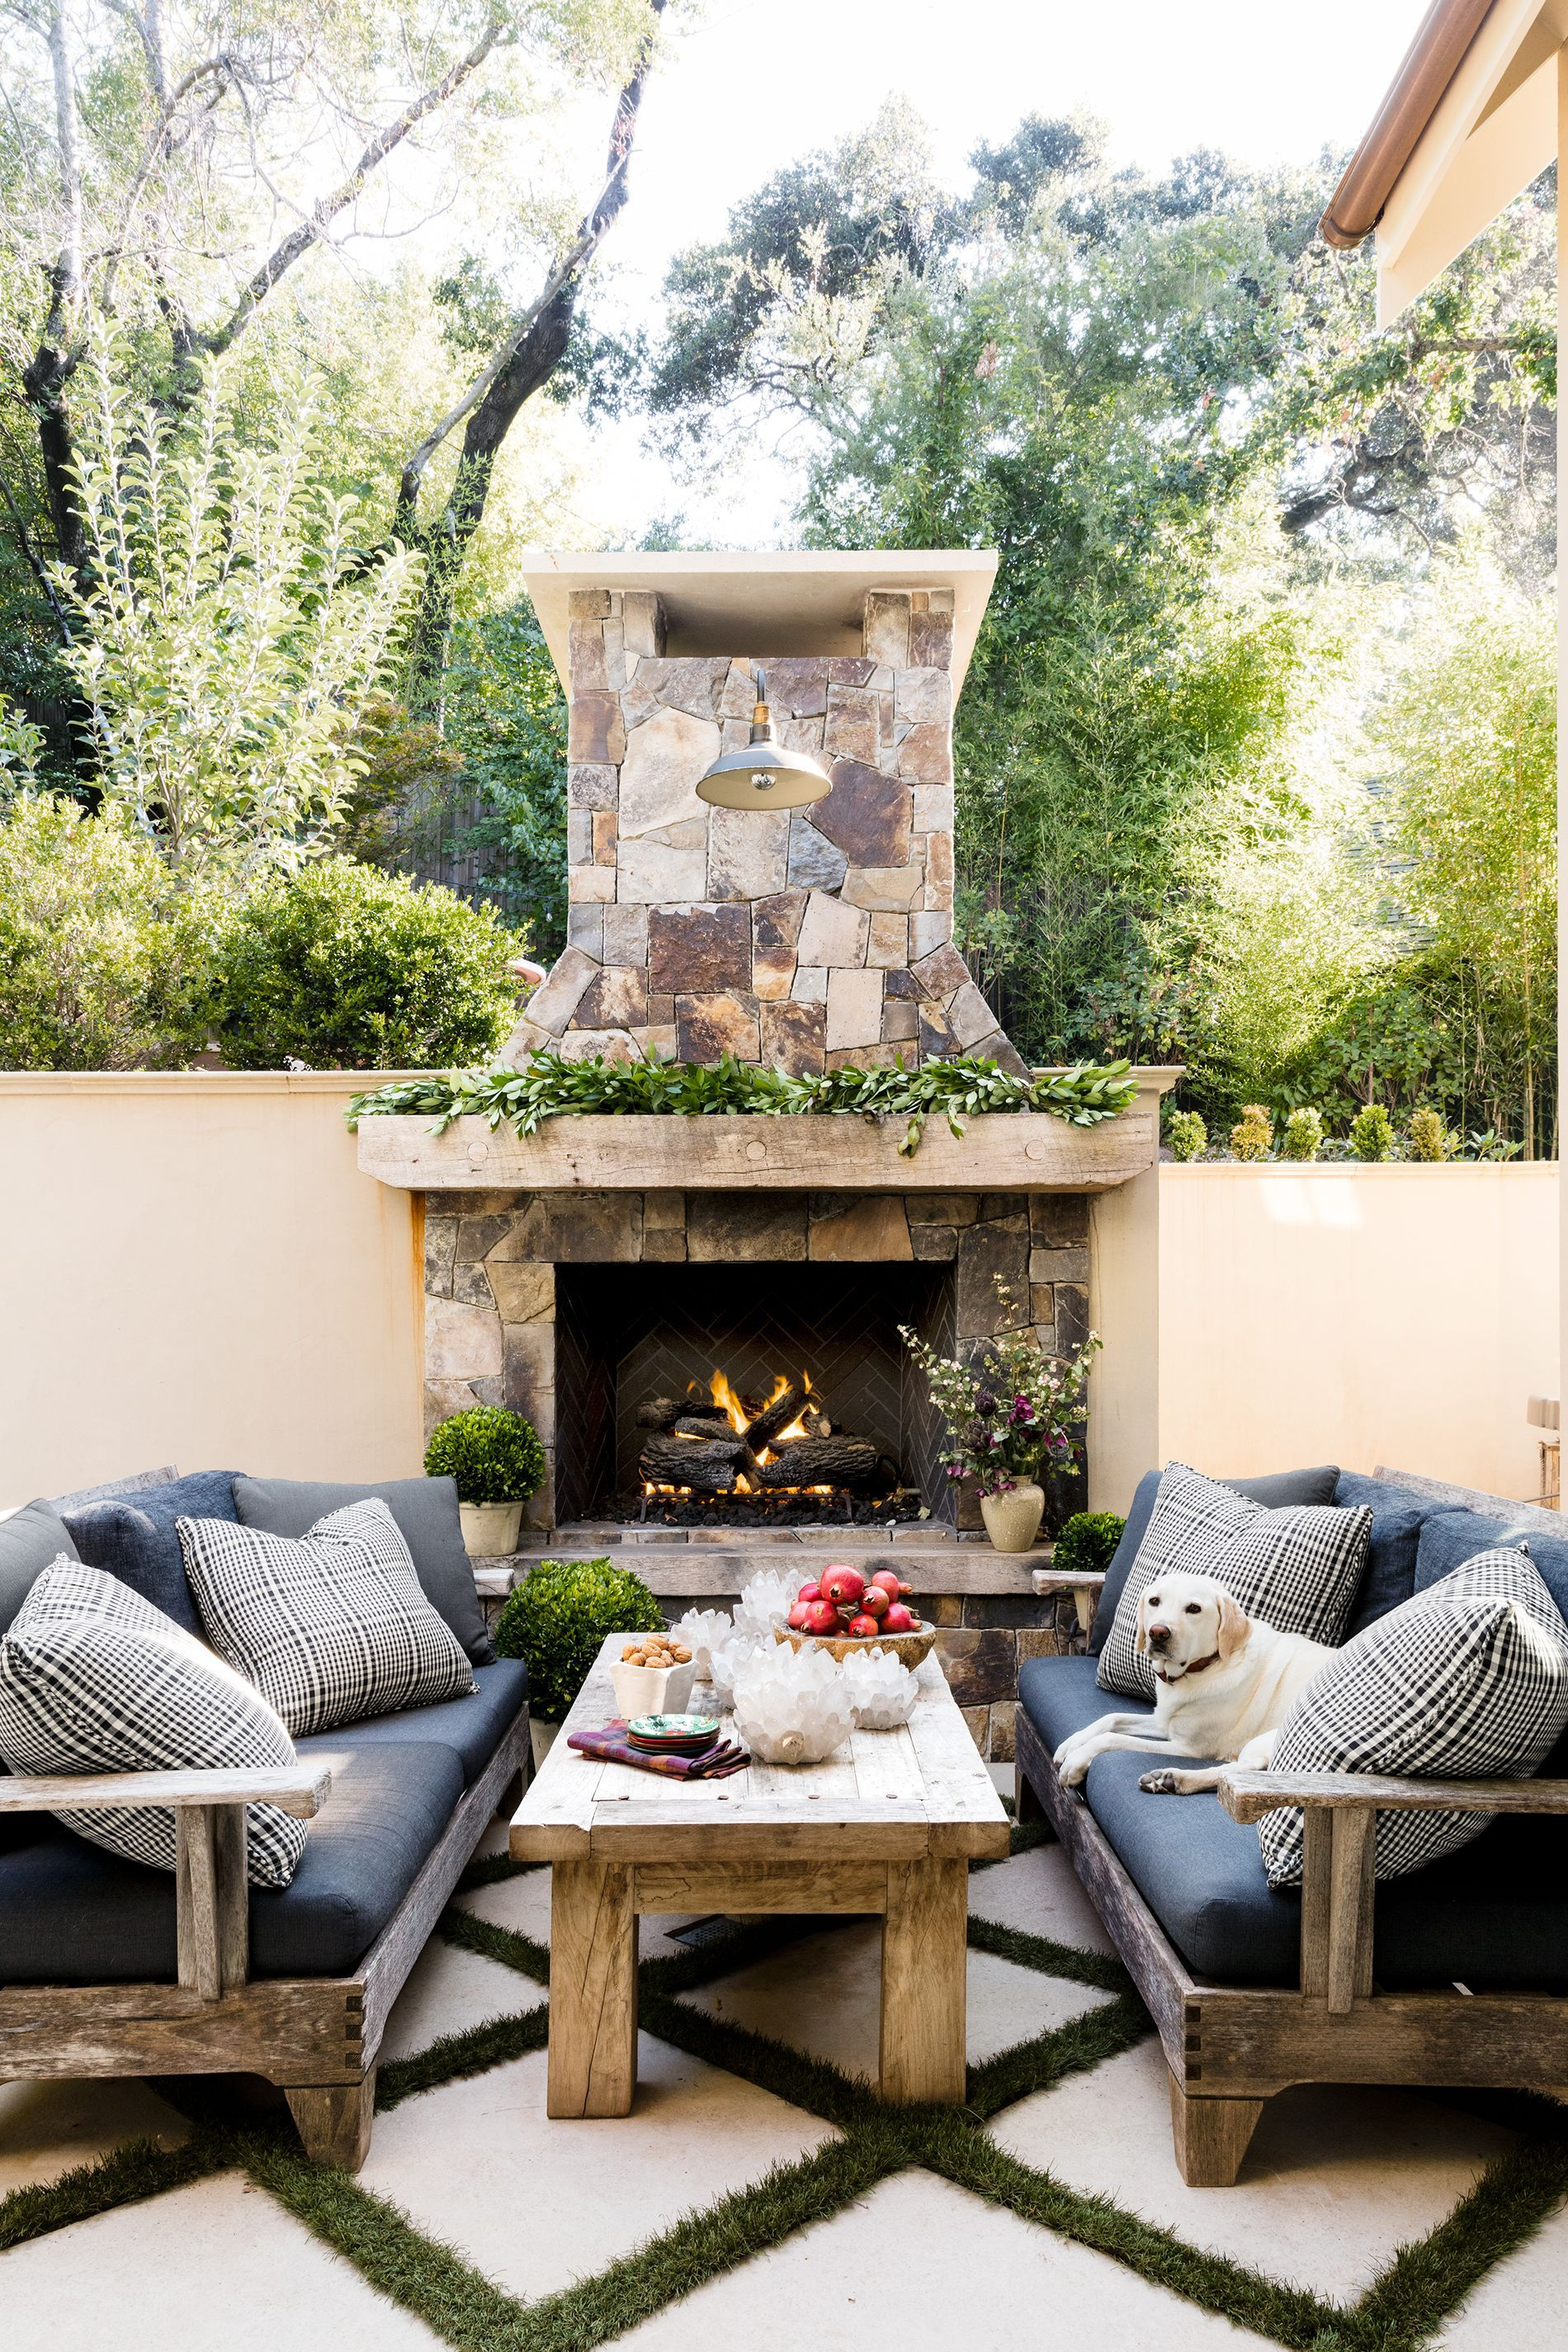 Image of: 25 Outdoor Fireplace Ideas Outdoor Fireplaces Fire Pits